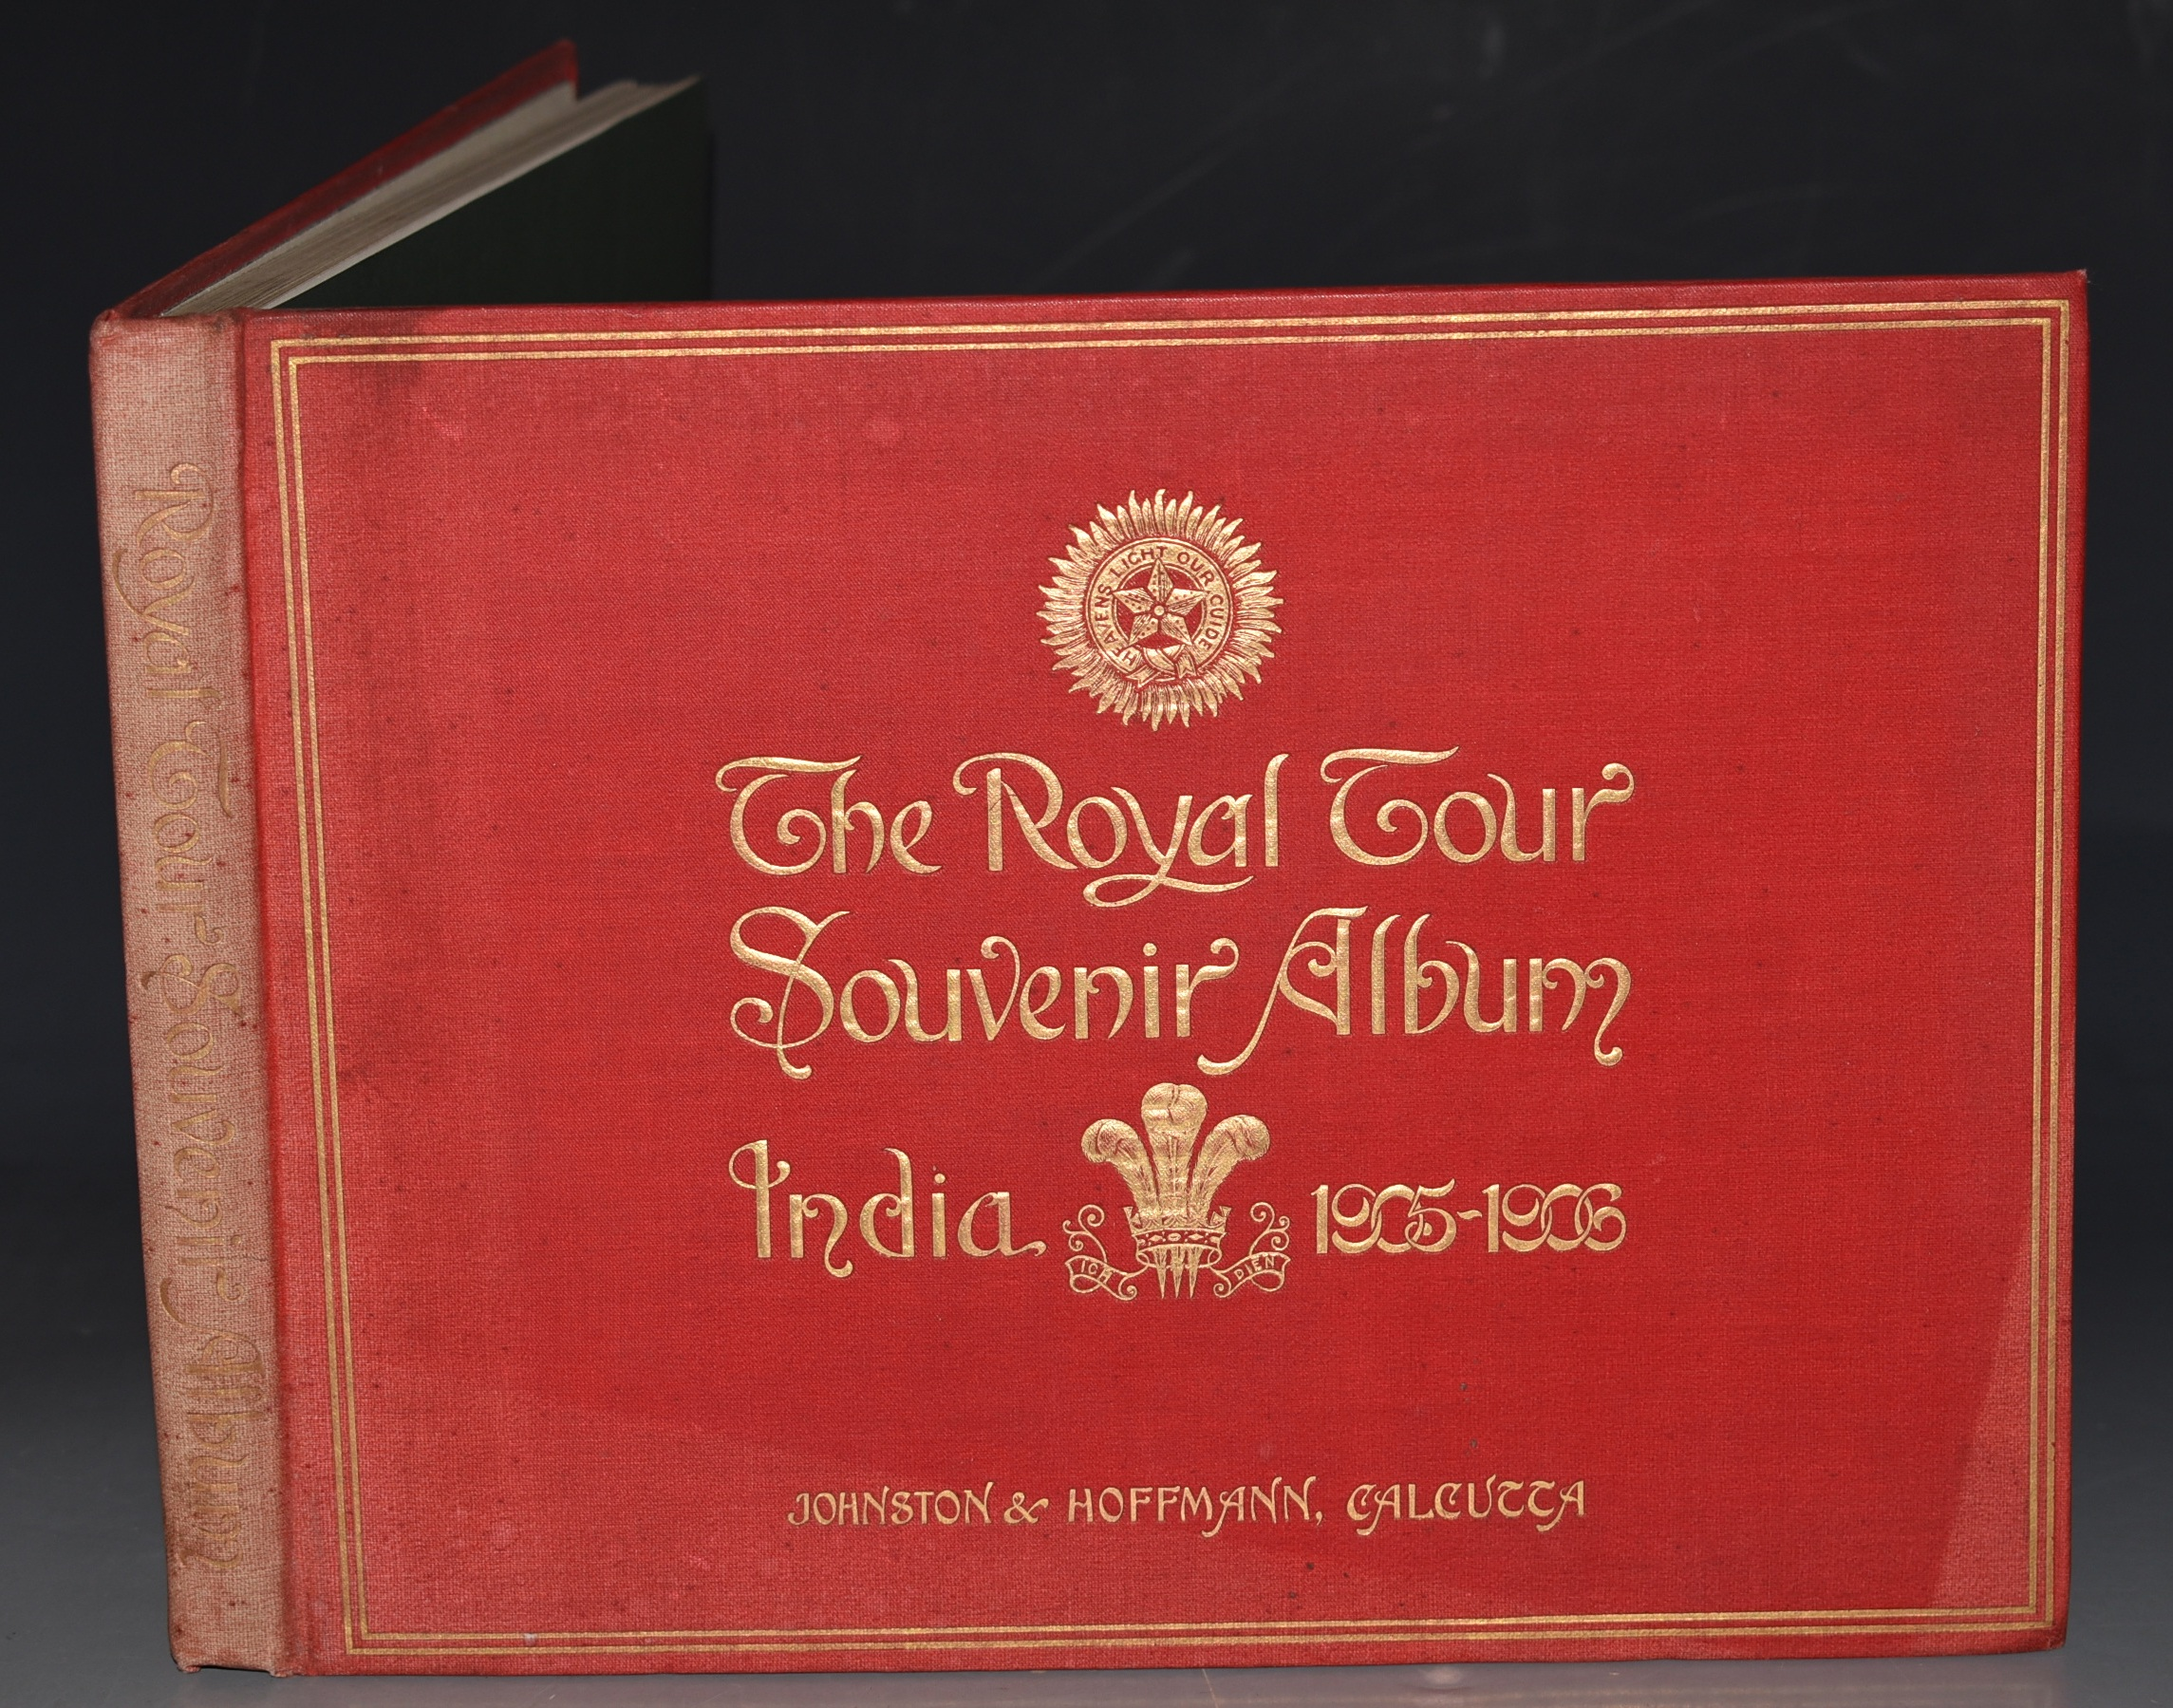 Image for Royal Tour Souvenir Album. India, 1905 - 1906. Containing a complete pictorial record of all the principle events in the Indian Tour of their Royal Highnesses the Prince and Princess of Wales.